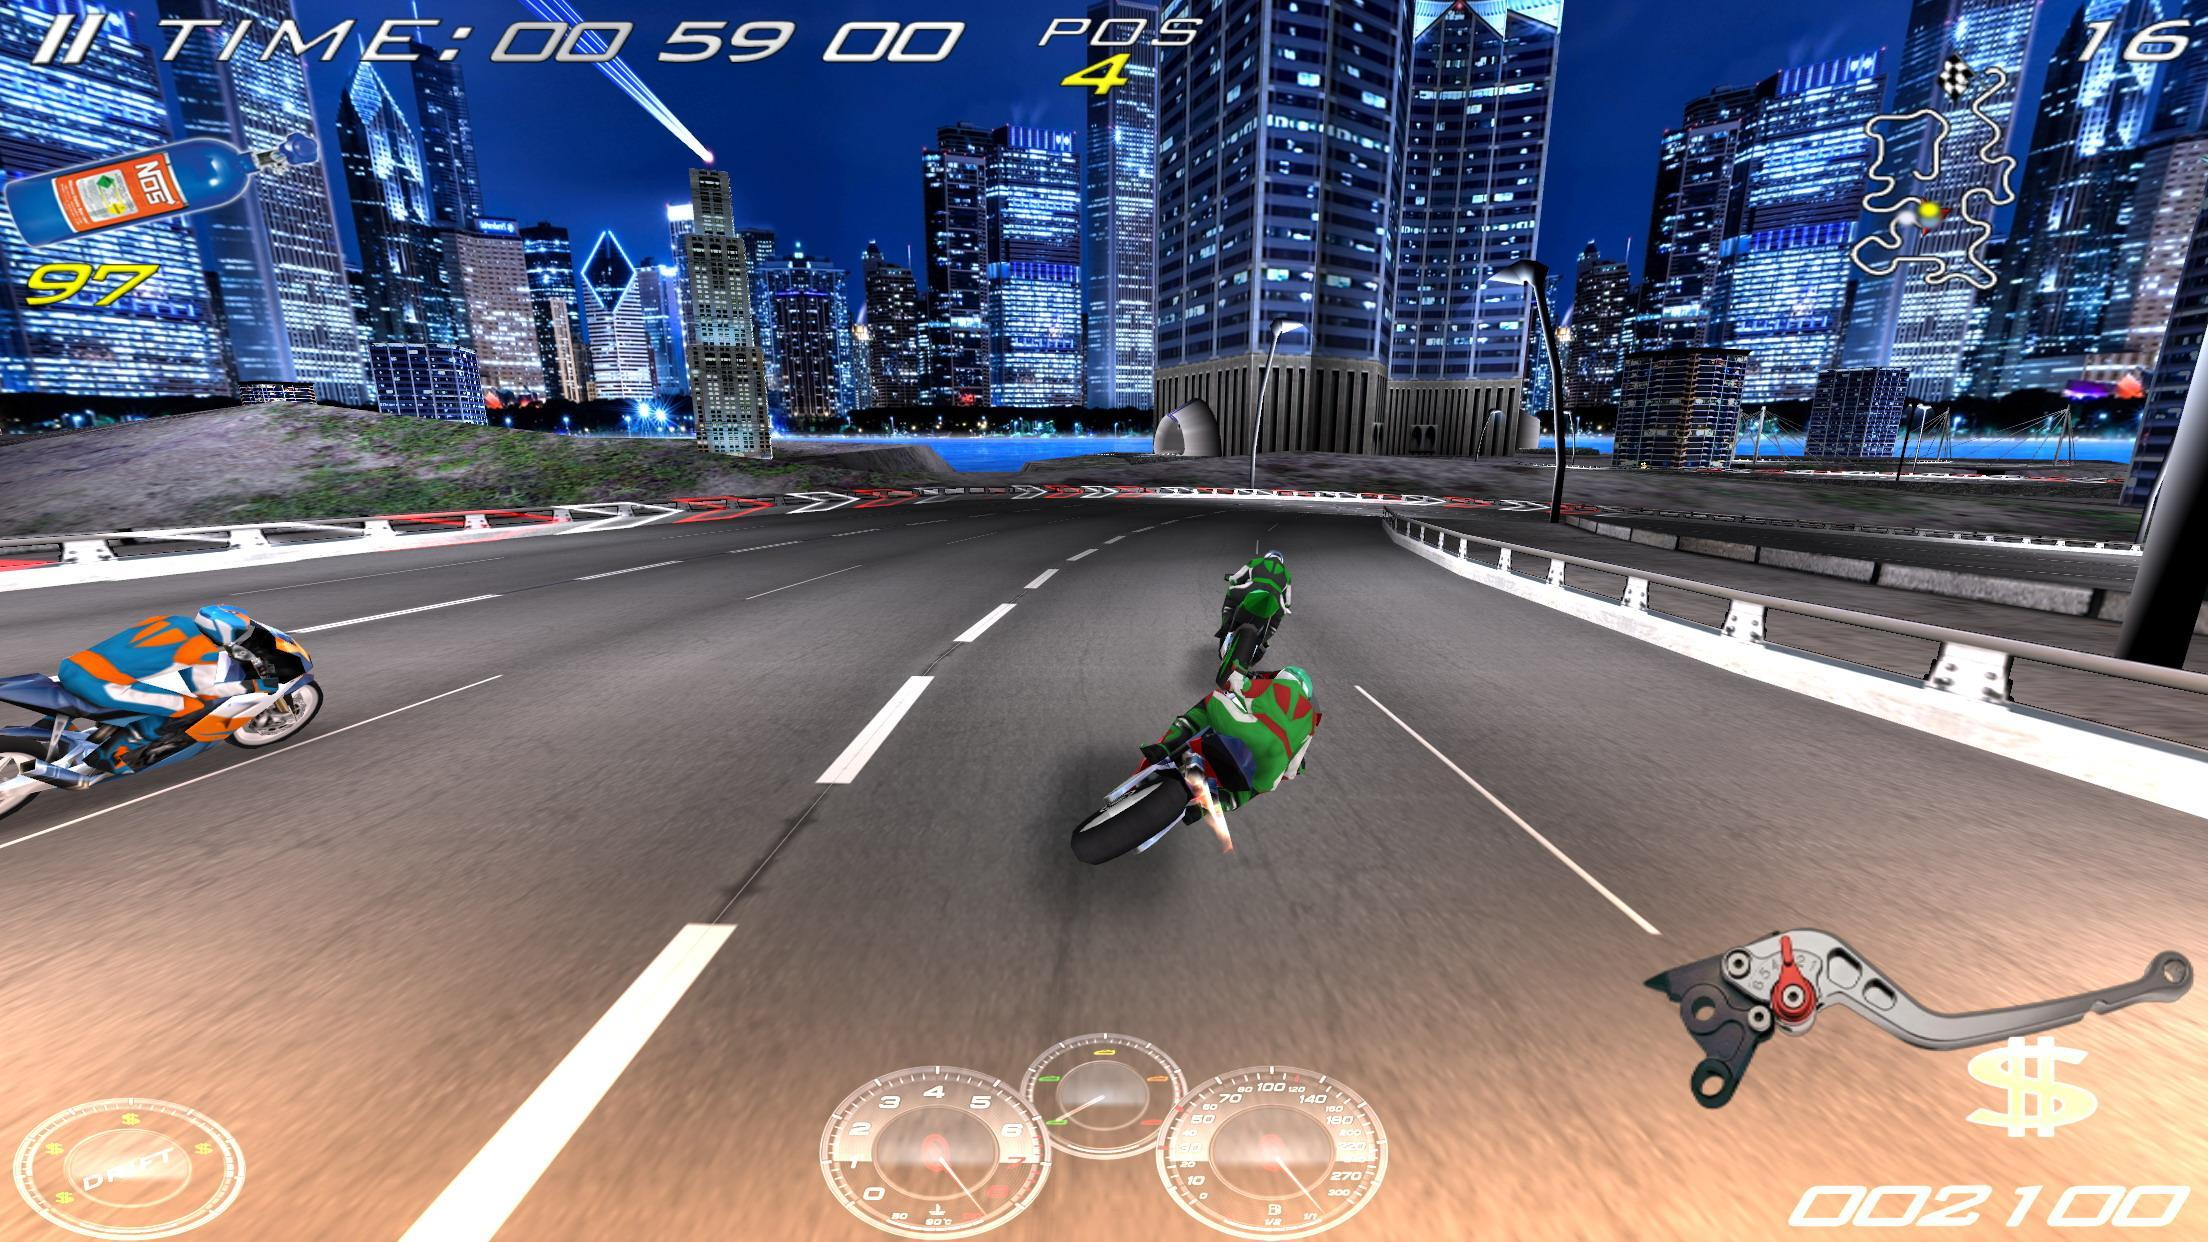 ultimate moto rr 4 for android apk download ultimate moto rr 4 for android apk